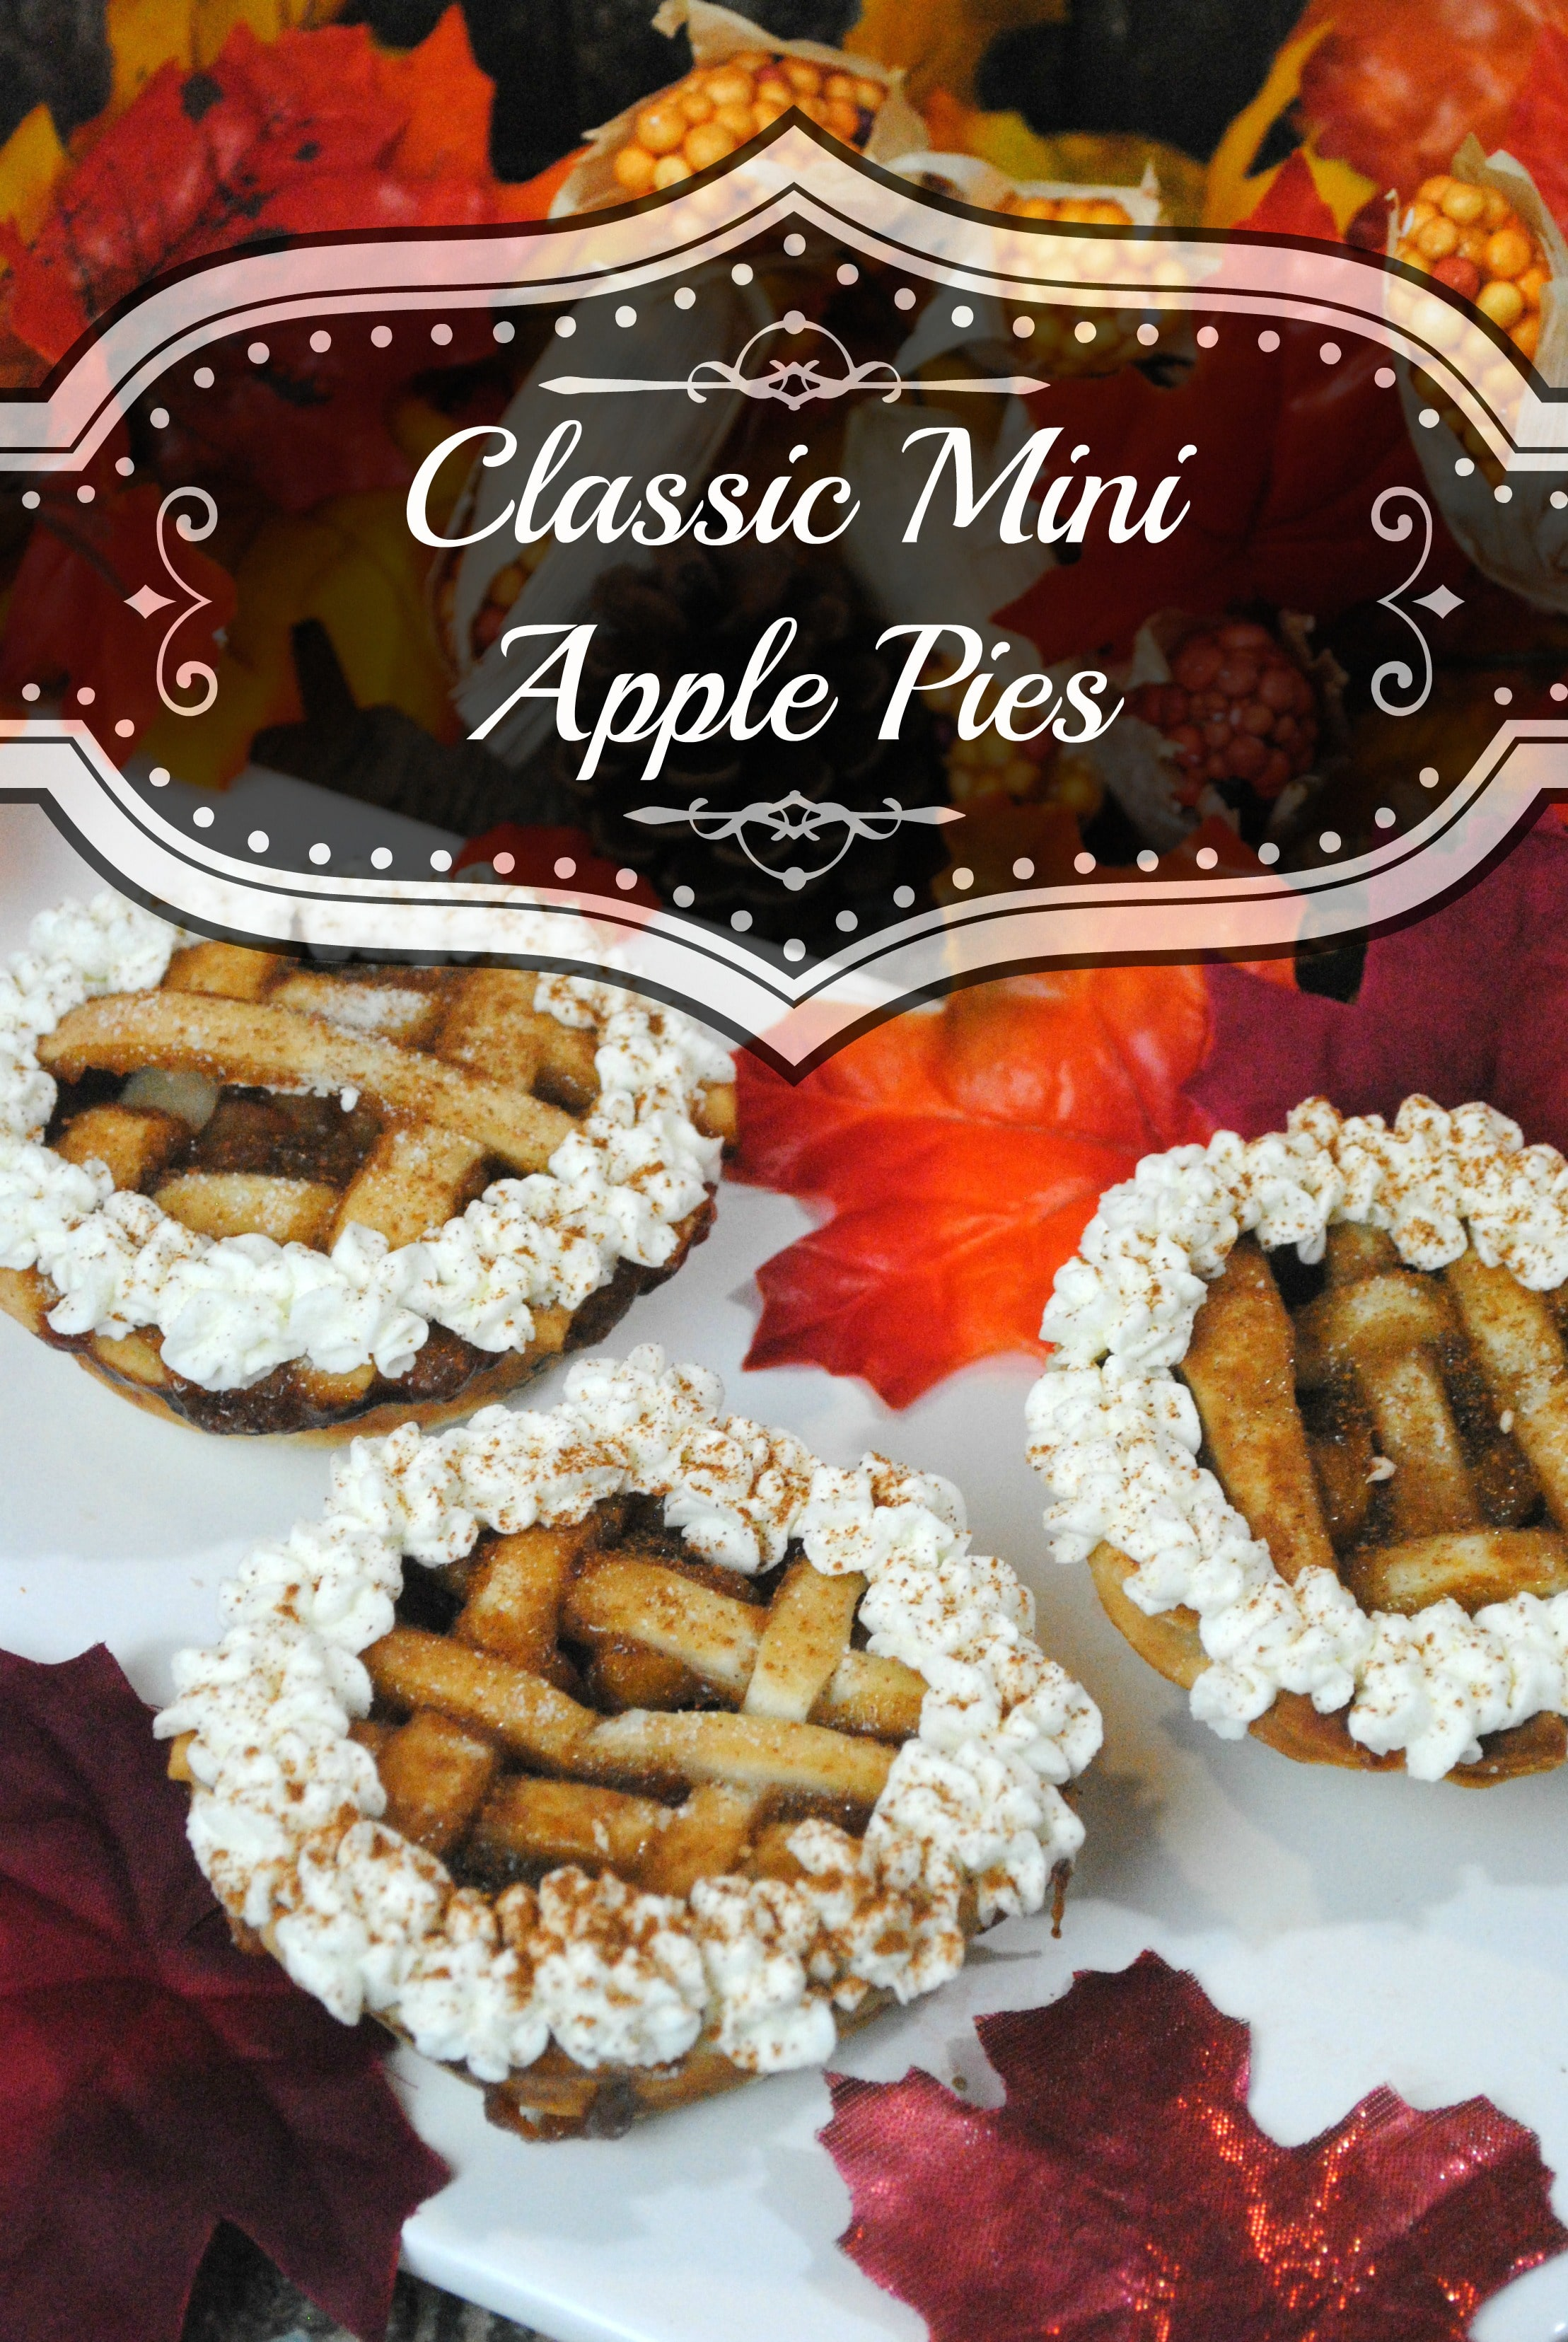 Classic apple pies are the perfect fall or autumn desserts. Here's an easy recipe for mini apple pies topped with homemade whipped cream.